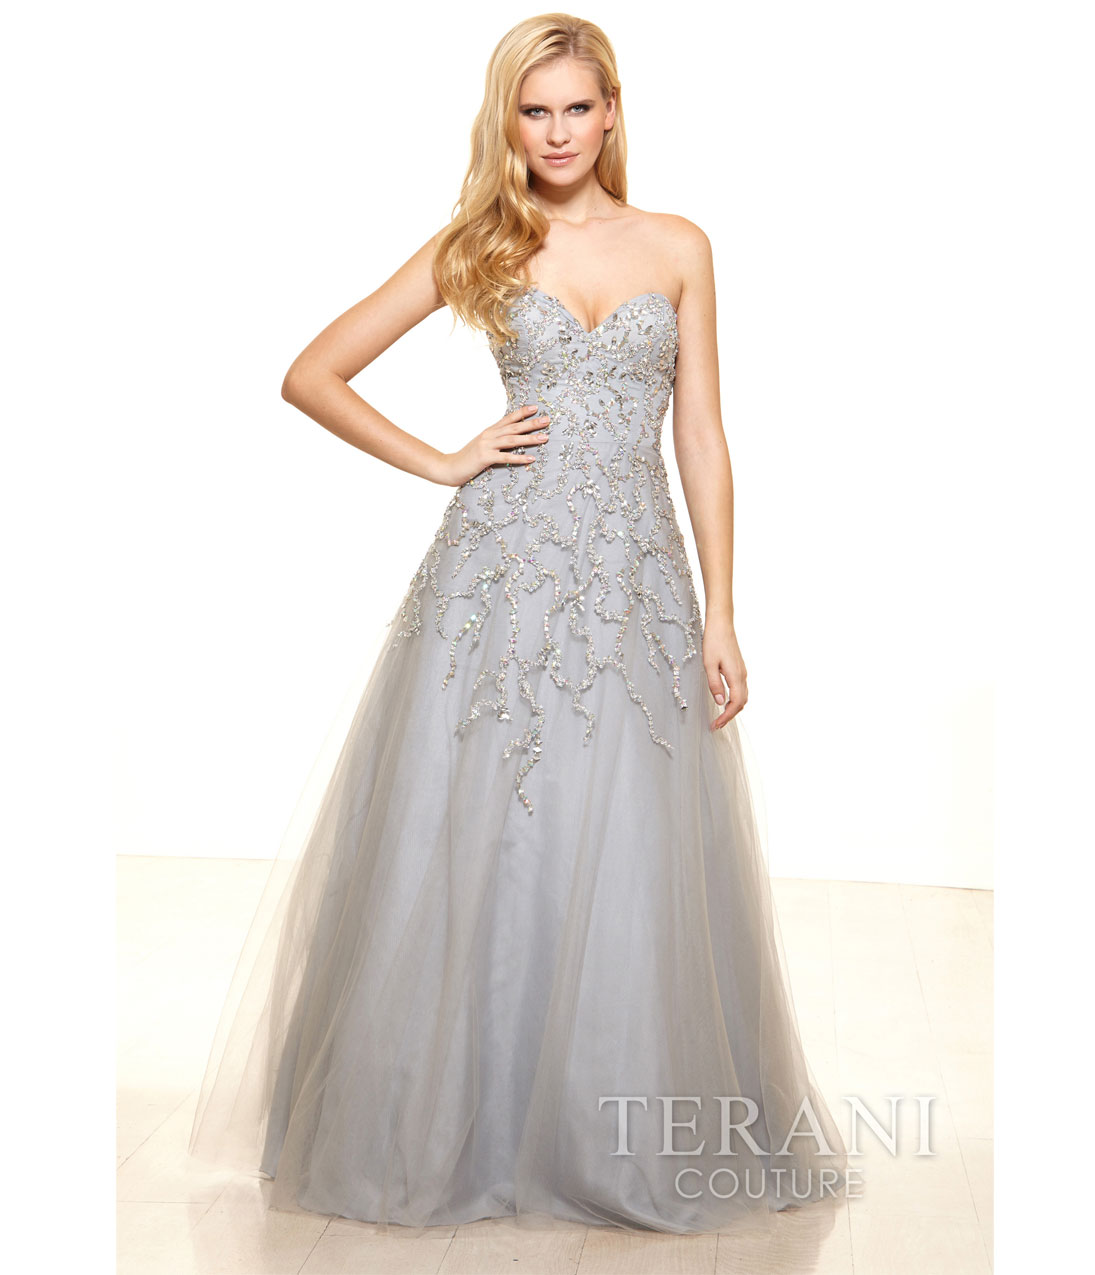 Silver Ball Gown Prom Dresses | Dress images